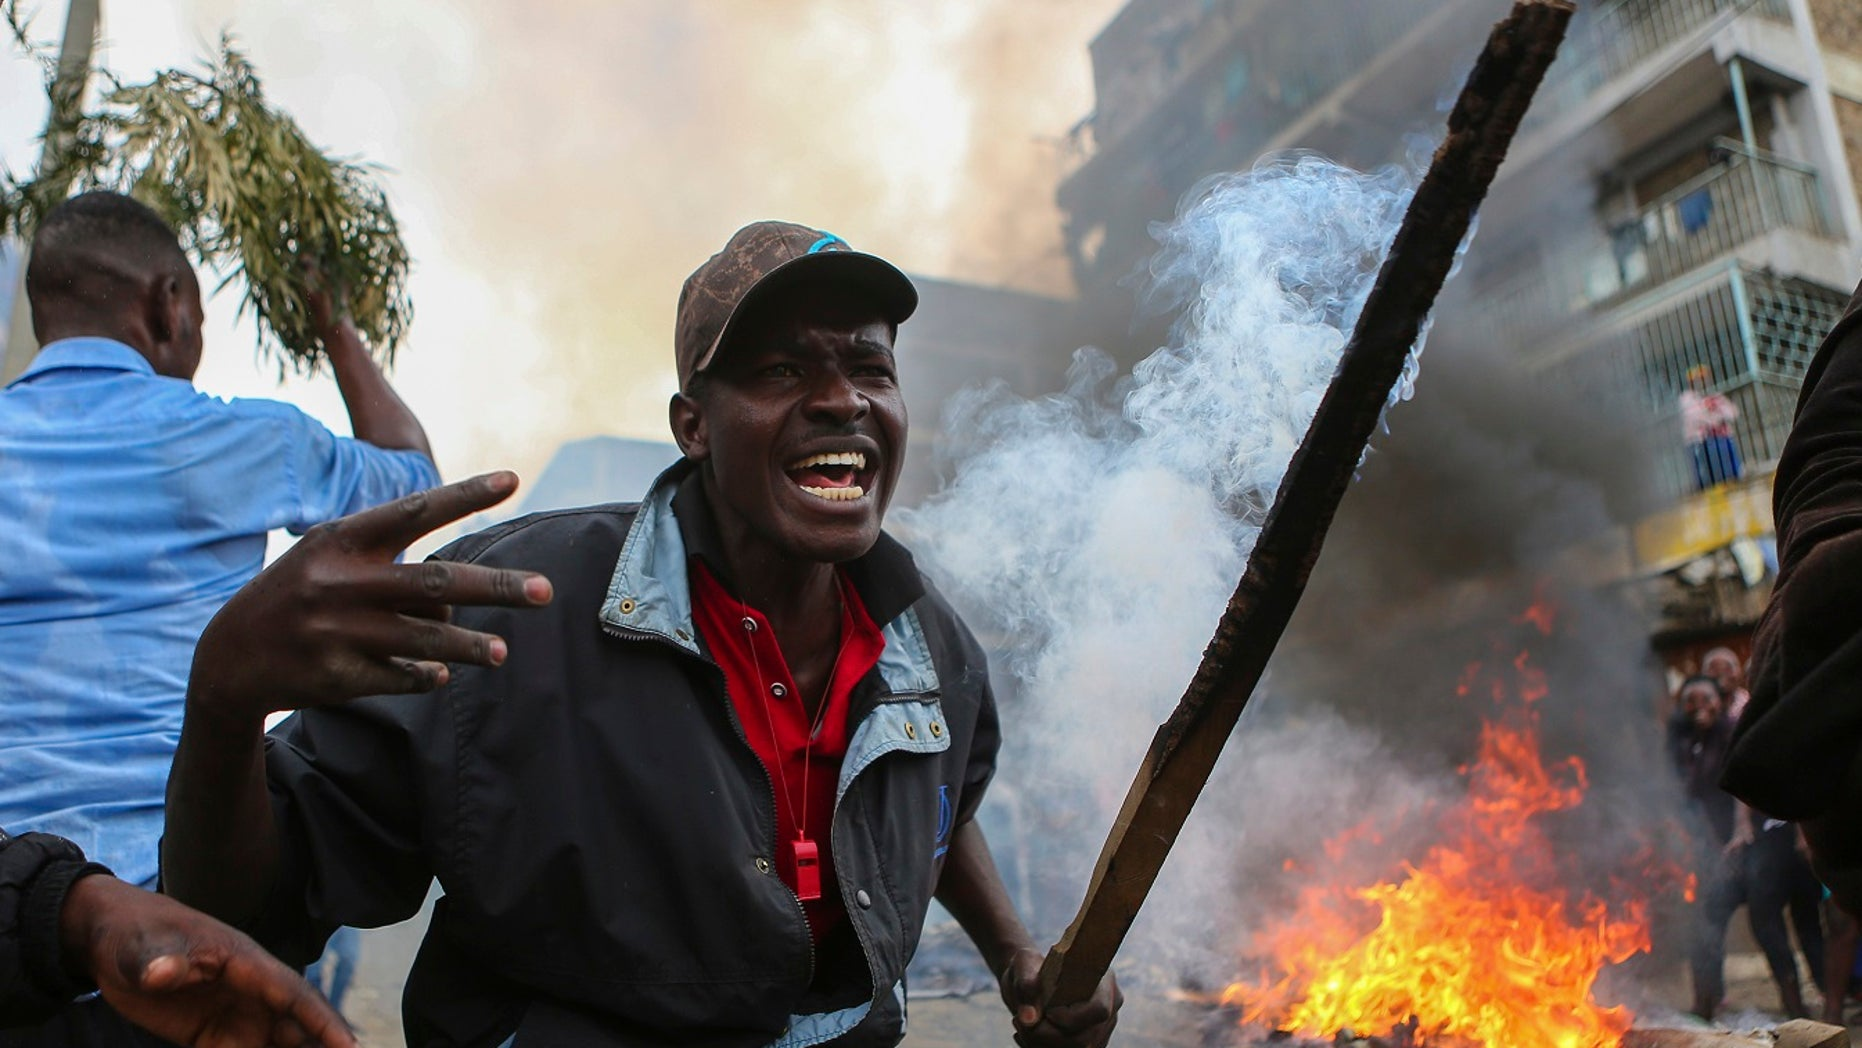 Residents of the Mathare area of Nairobi, Kenya, take to the streets by blocking roads with burning tires to protest in support of Kenyan opposition leader and presidential candidate Ralia Odinga.